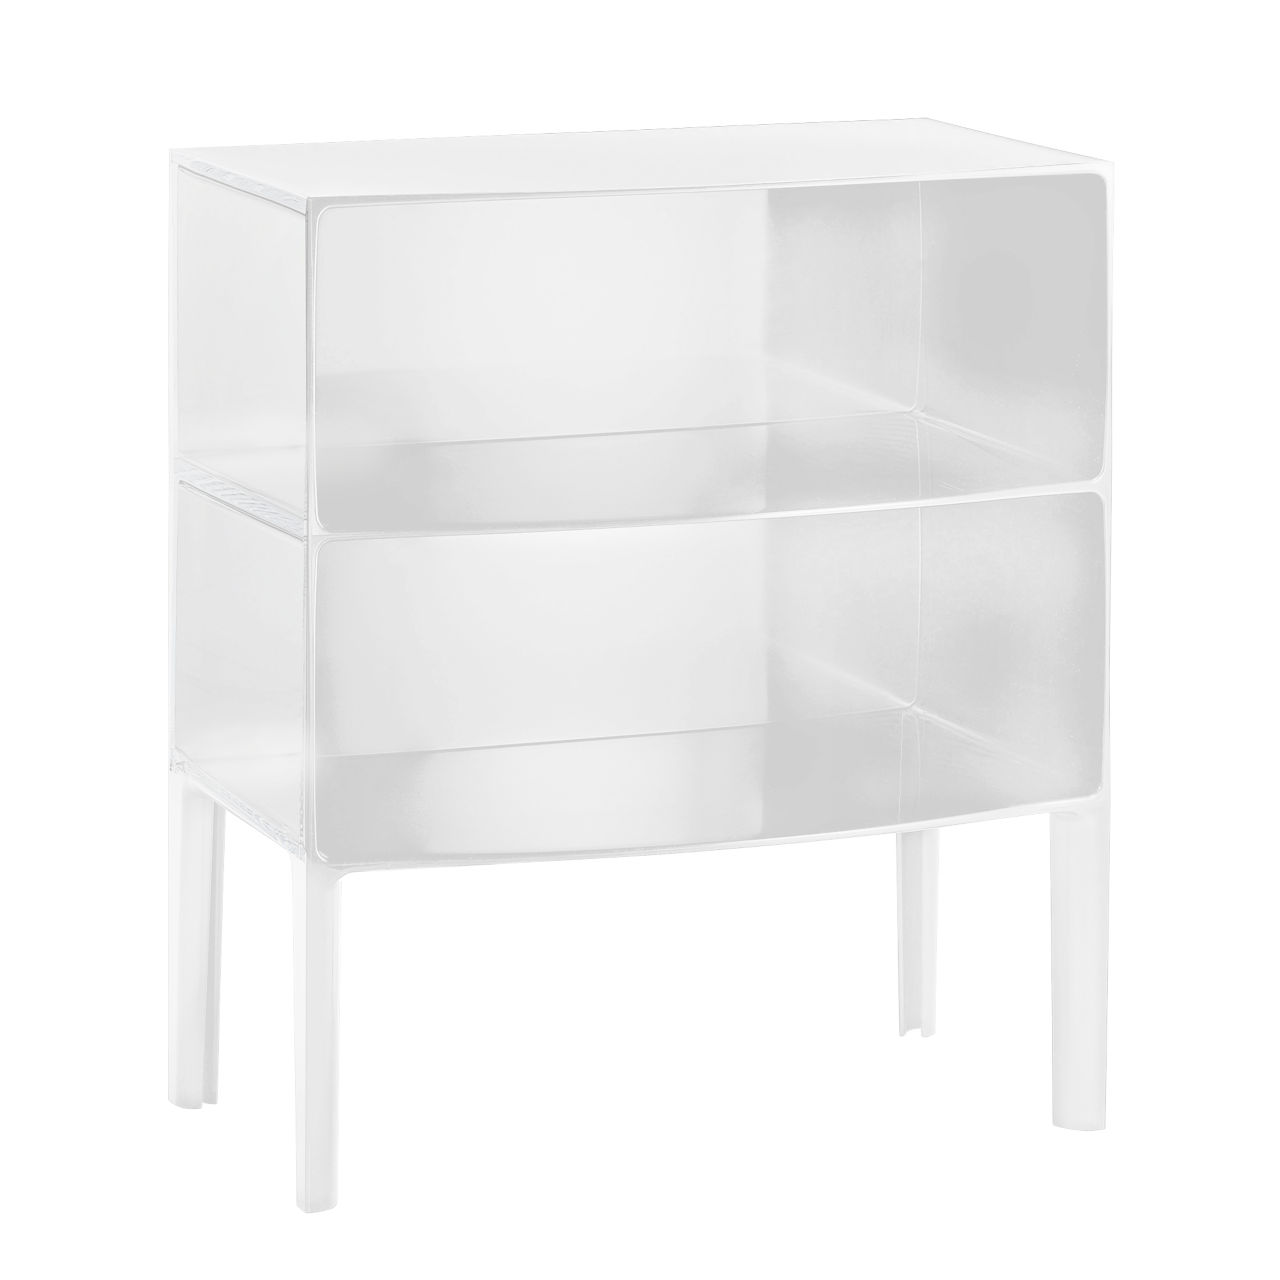 Ghost Buster in Crystal by Kartell